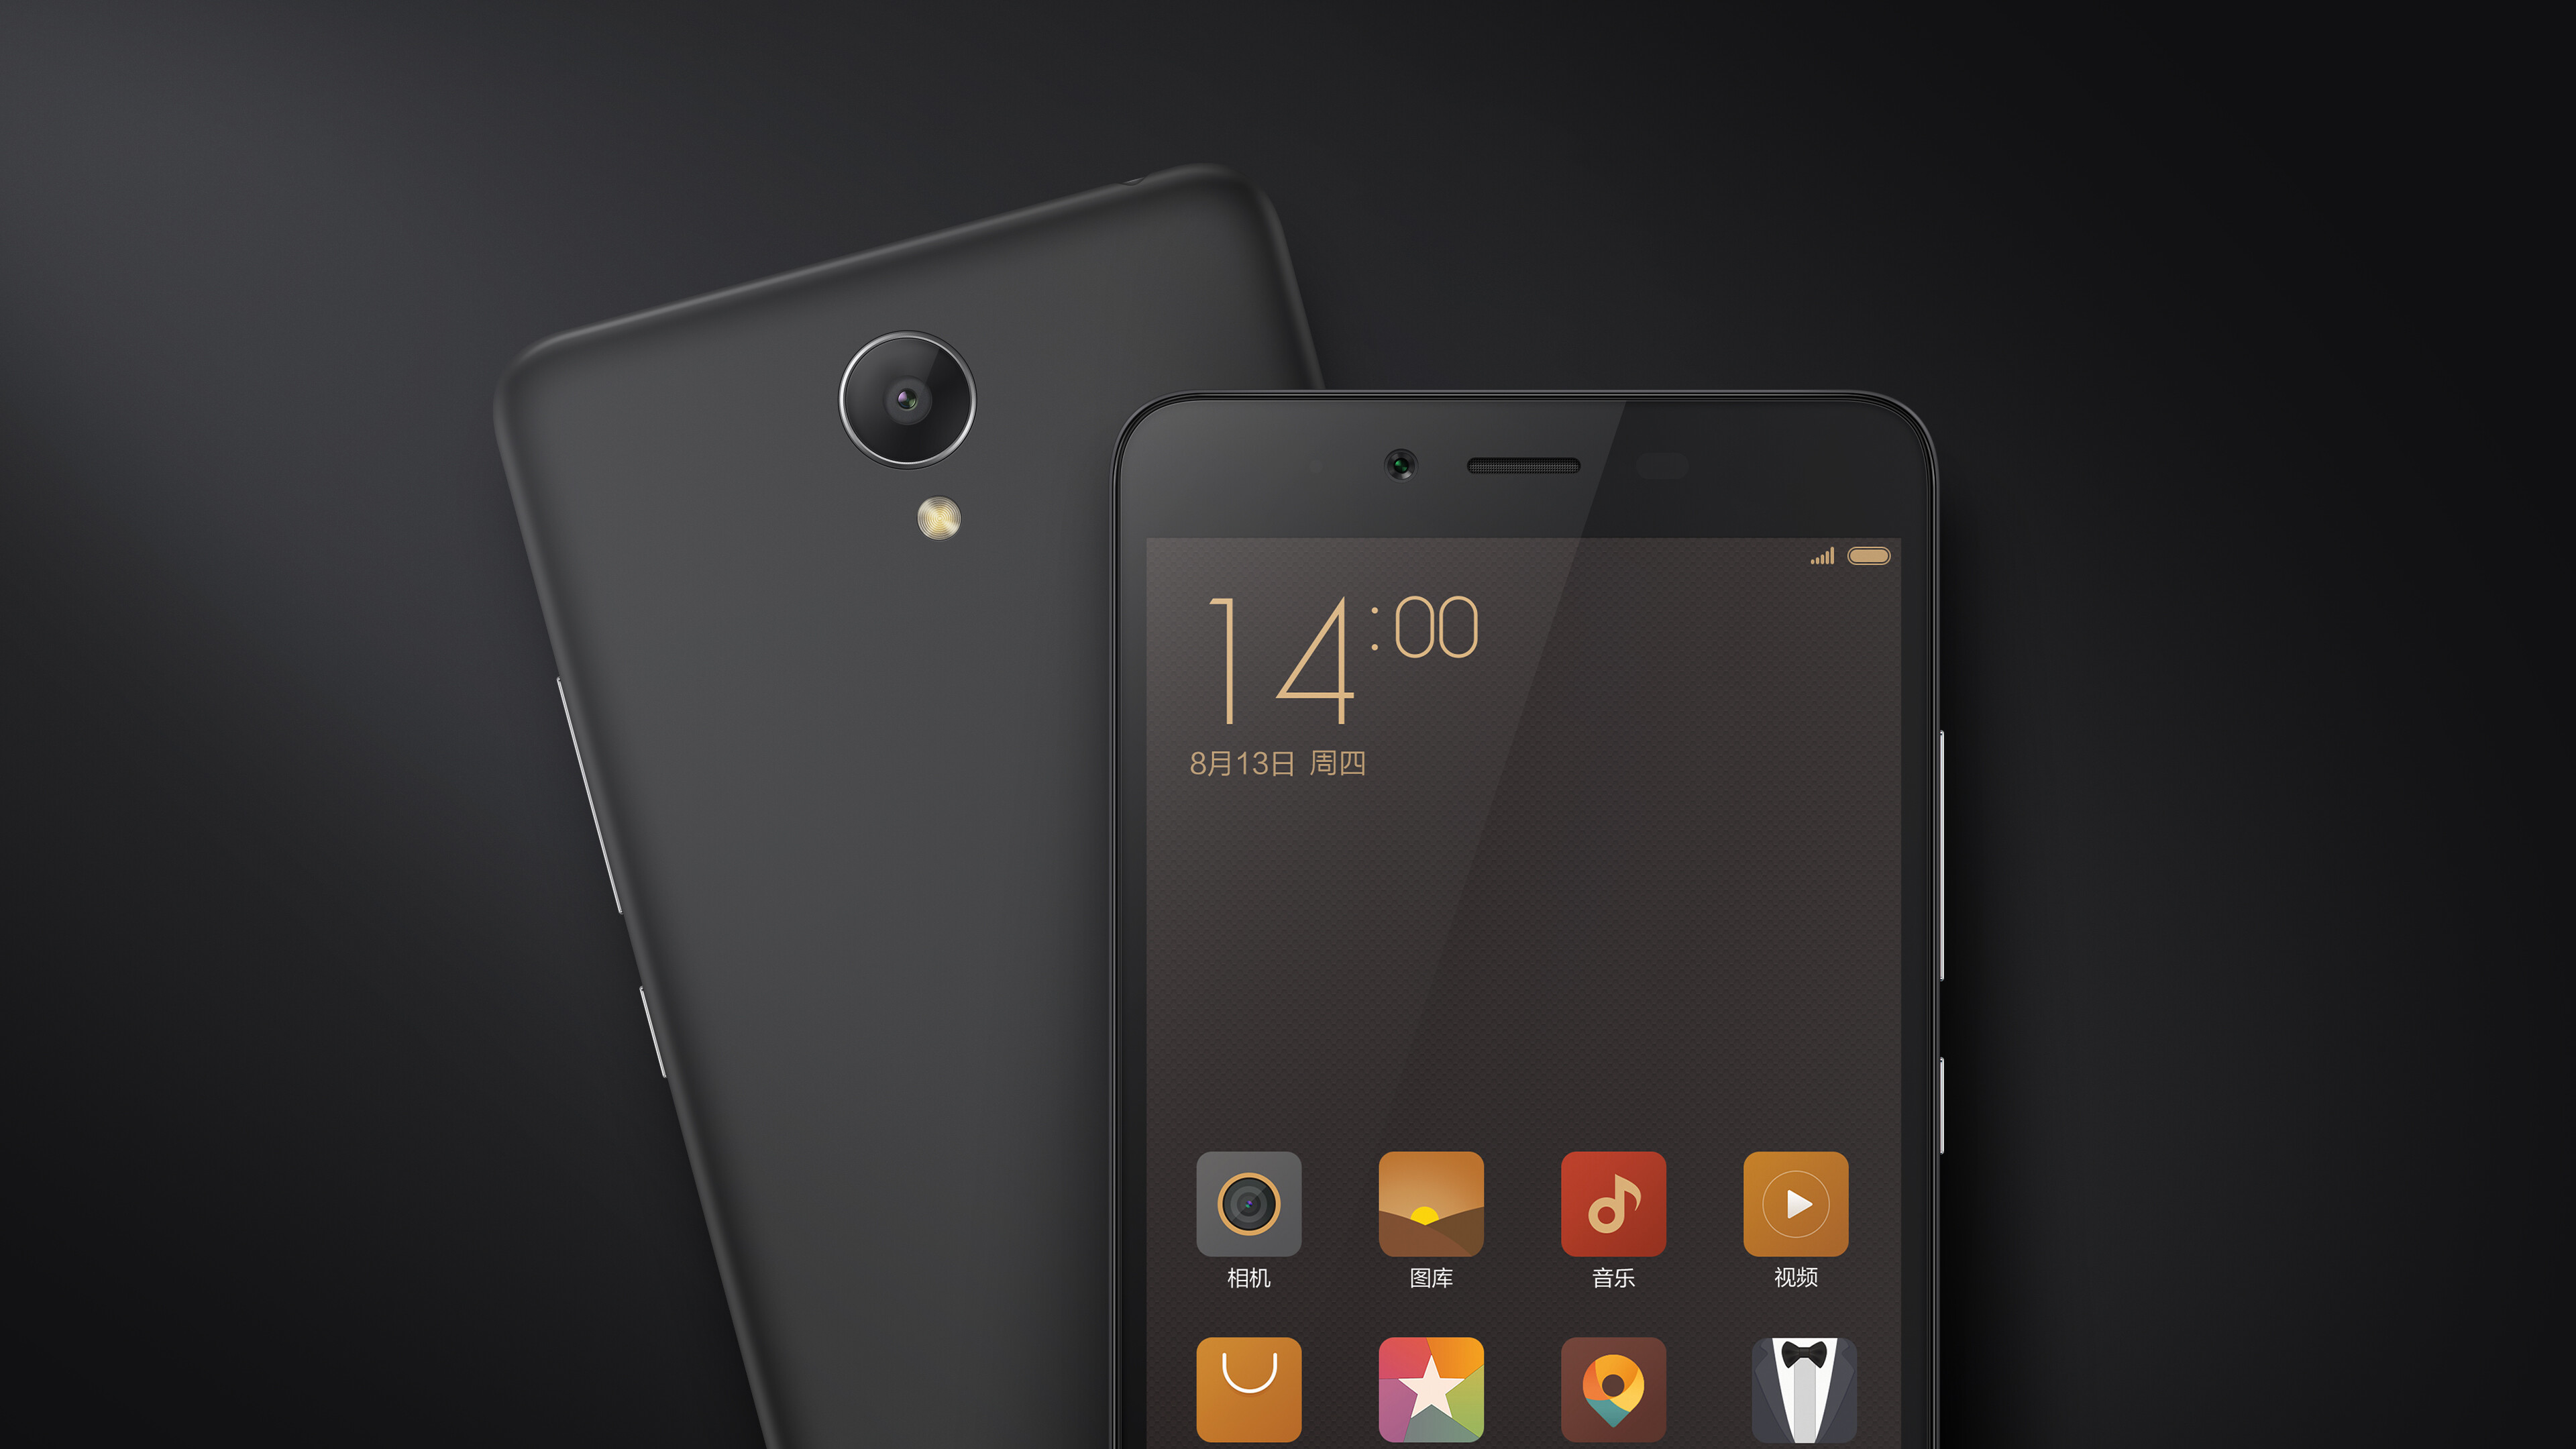 Xiaomi Redmi Note 2 Is Now Official: Powered By Powerful